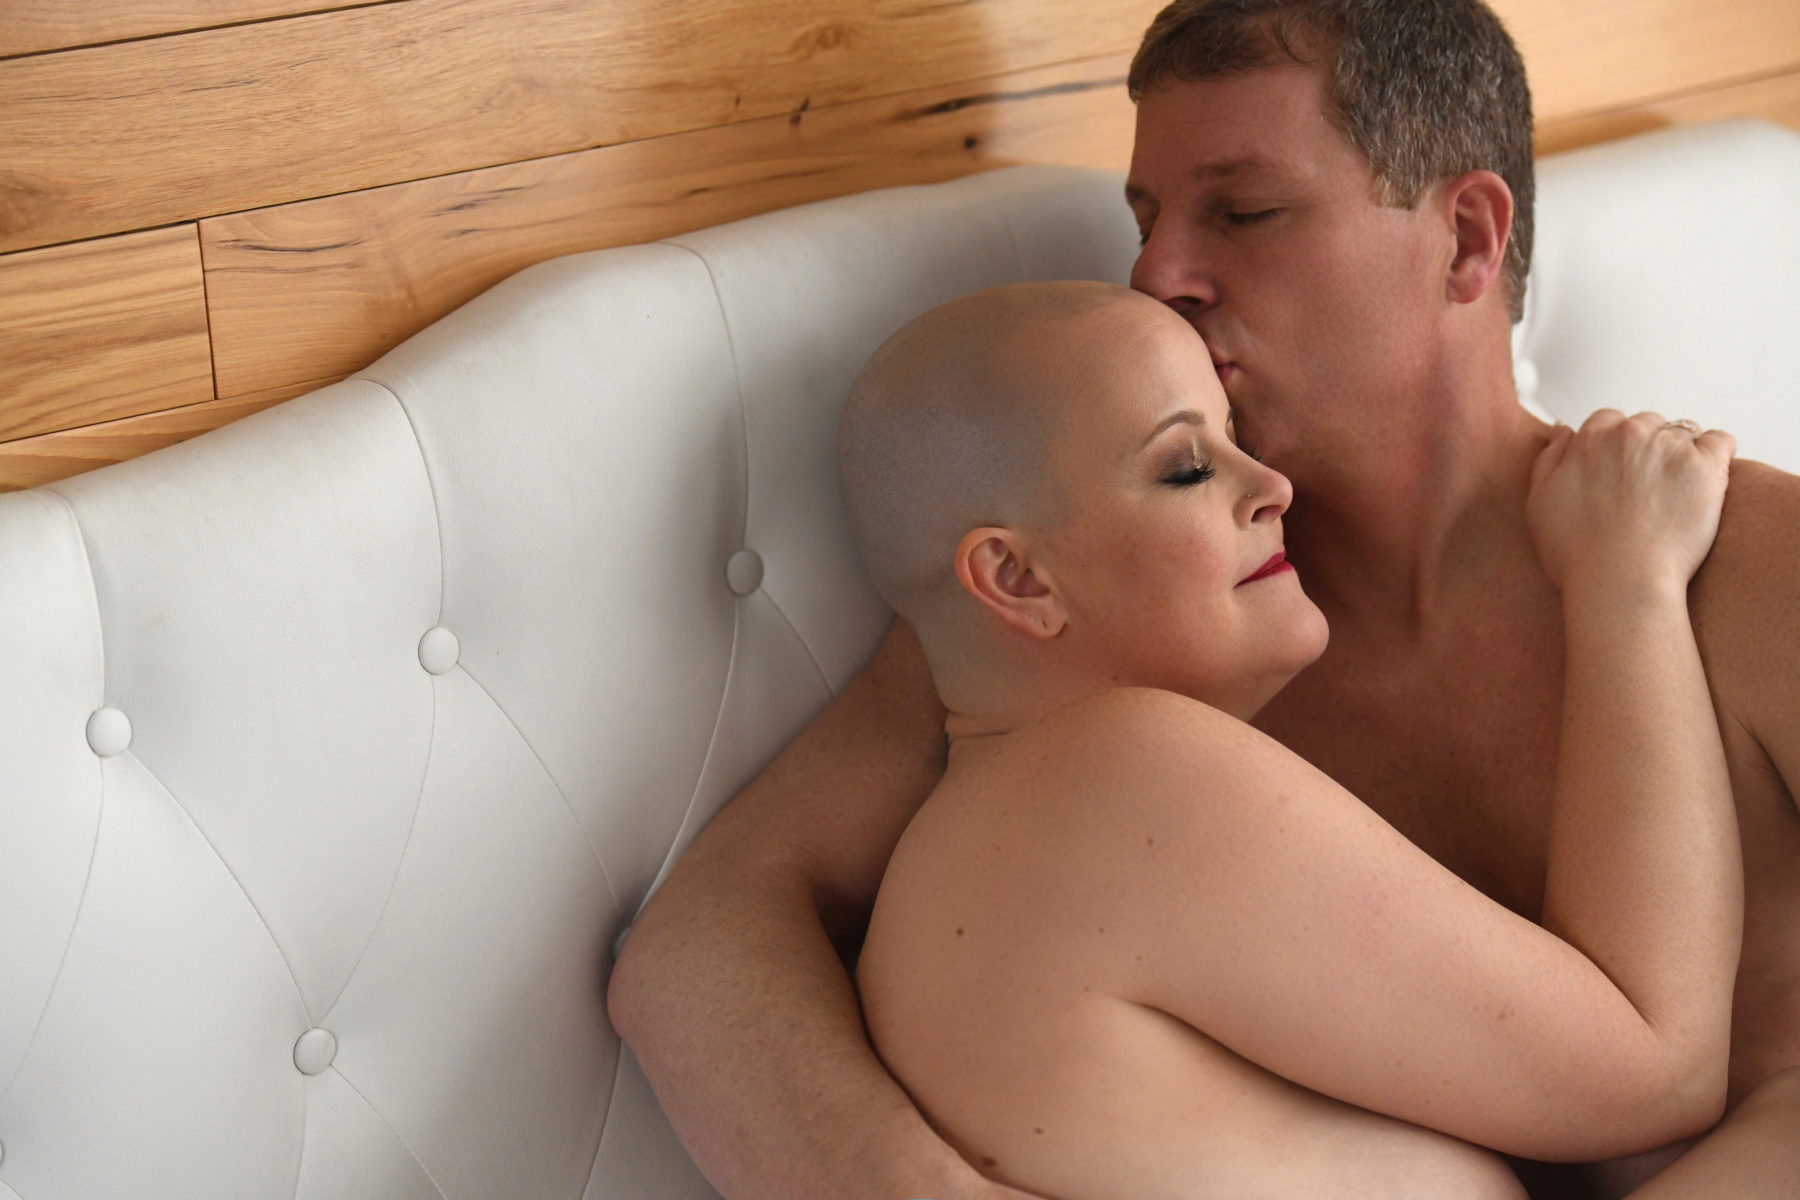 Couple in Bed: Creative Couples Boudoir Poses